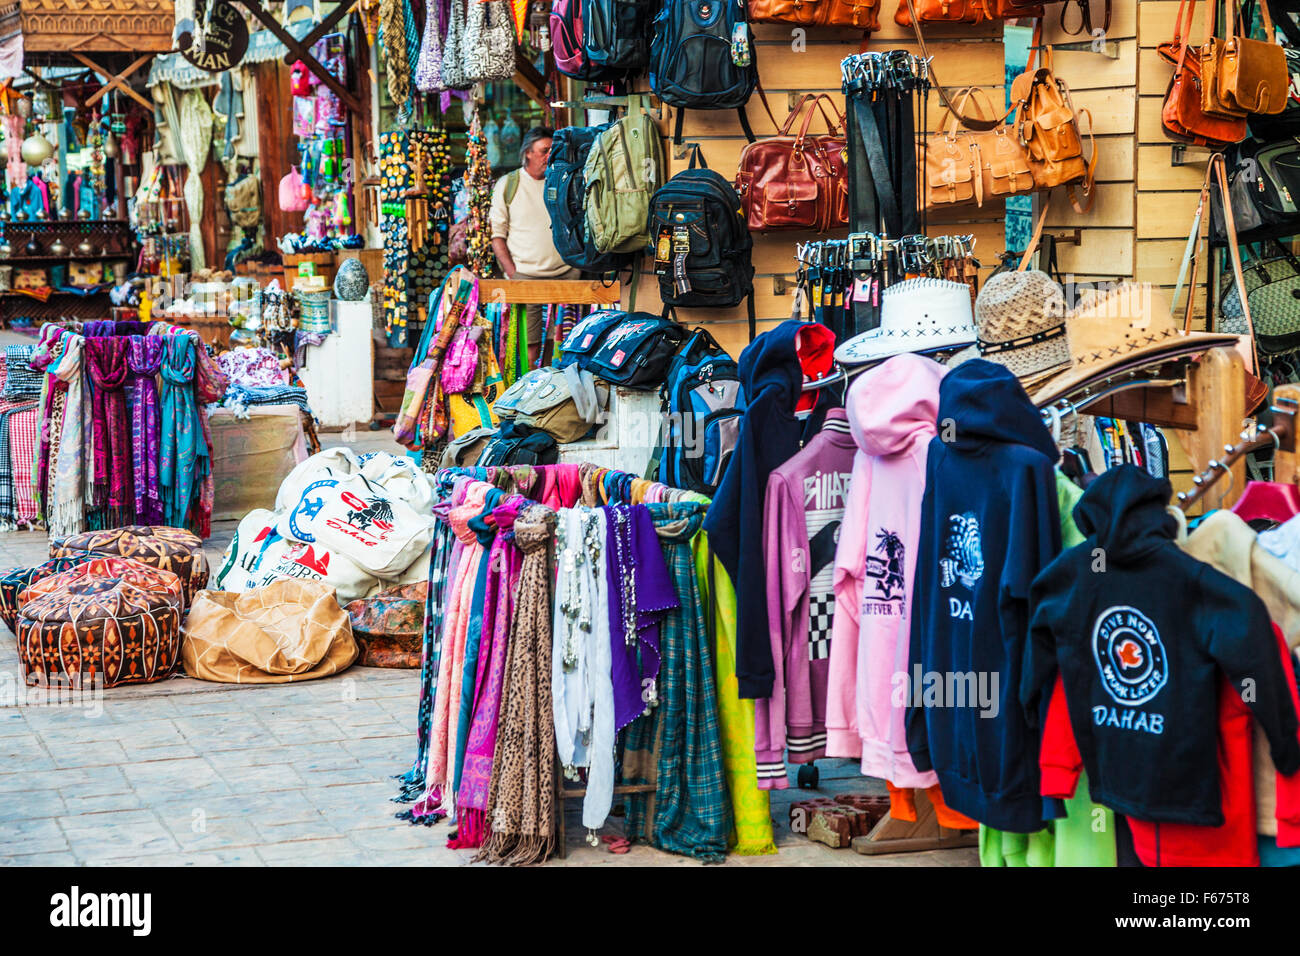 Clothing, bags and tourist souvenirs in Dahab, Egypt. - Stock Image